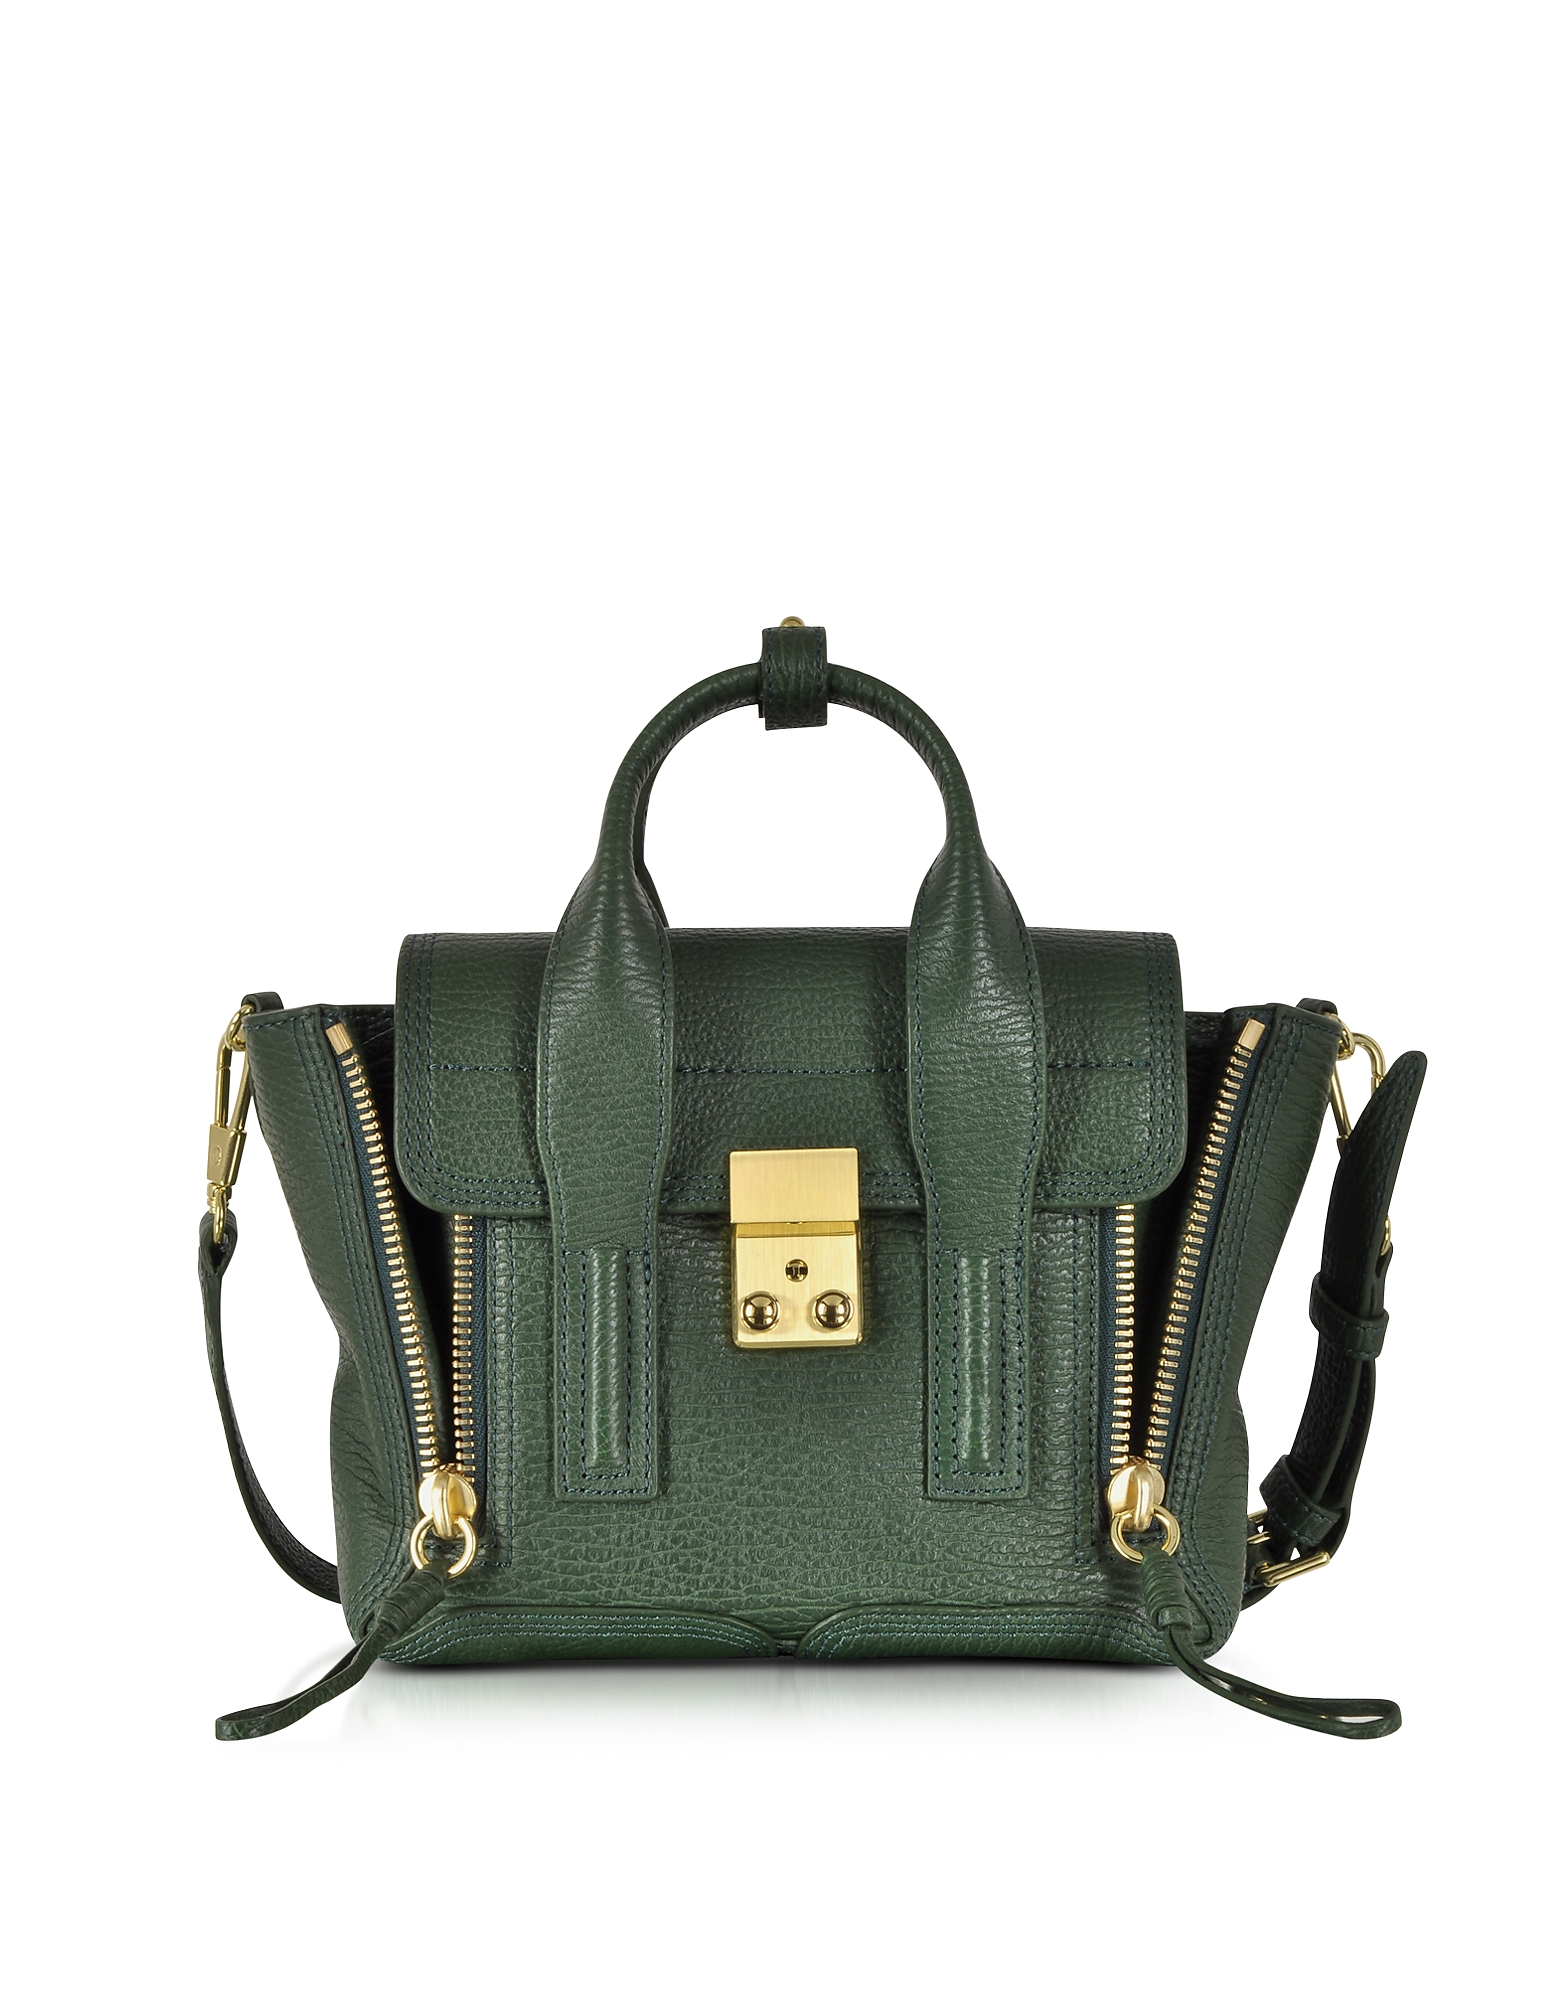 3.1 Phillip Lim Handbags, Pashli Mini Satchel w/Shoulder Strap